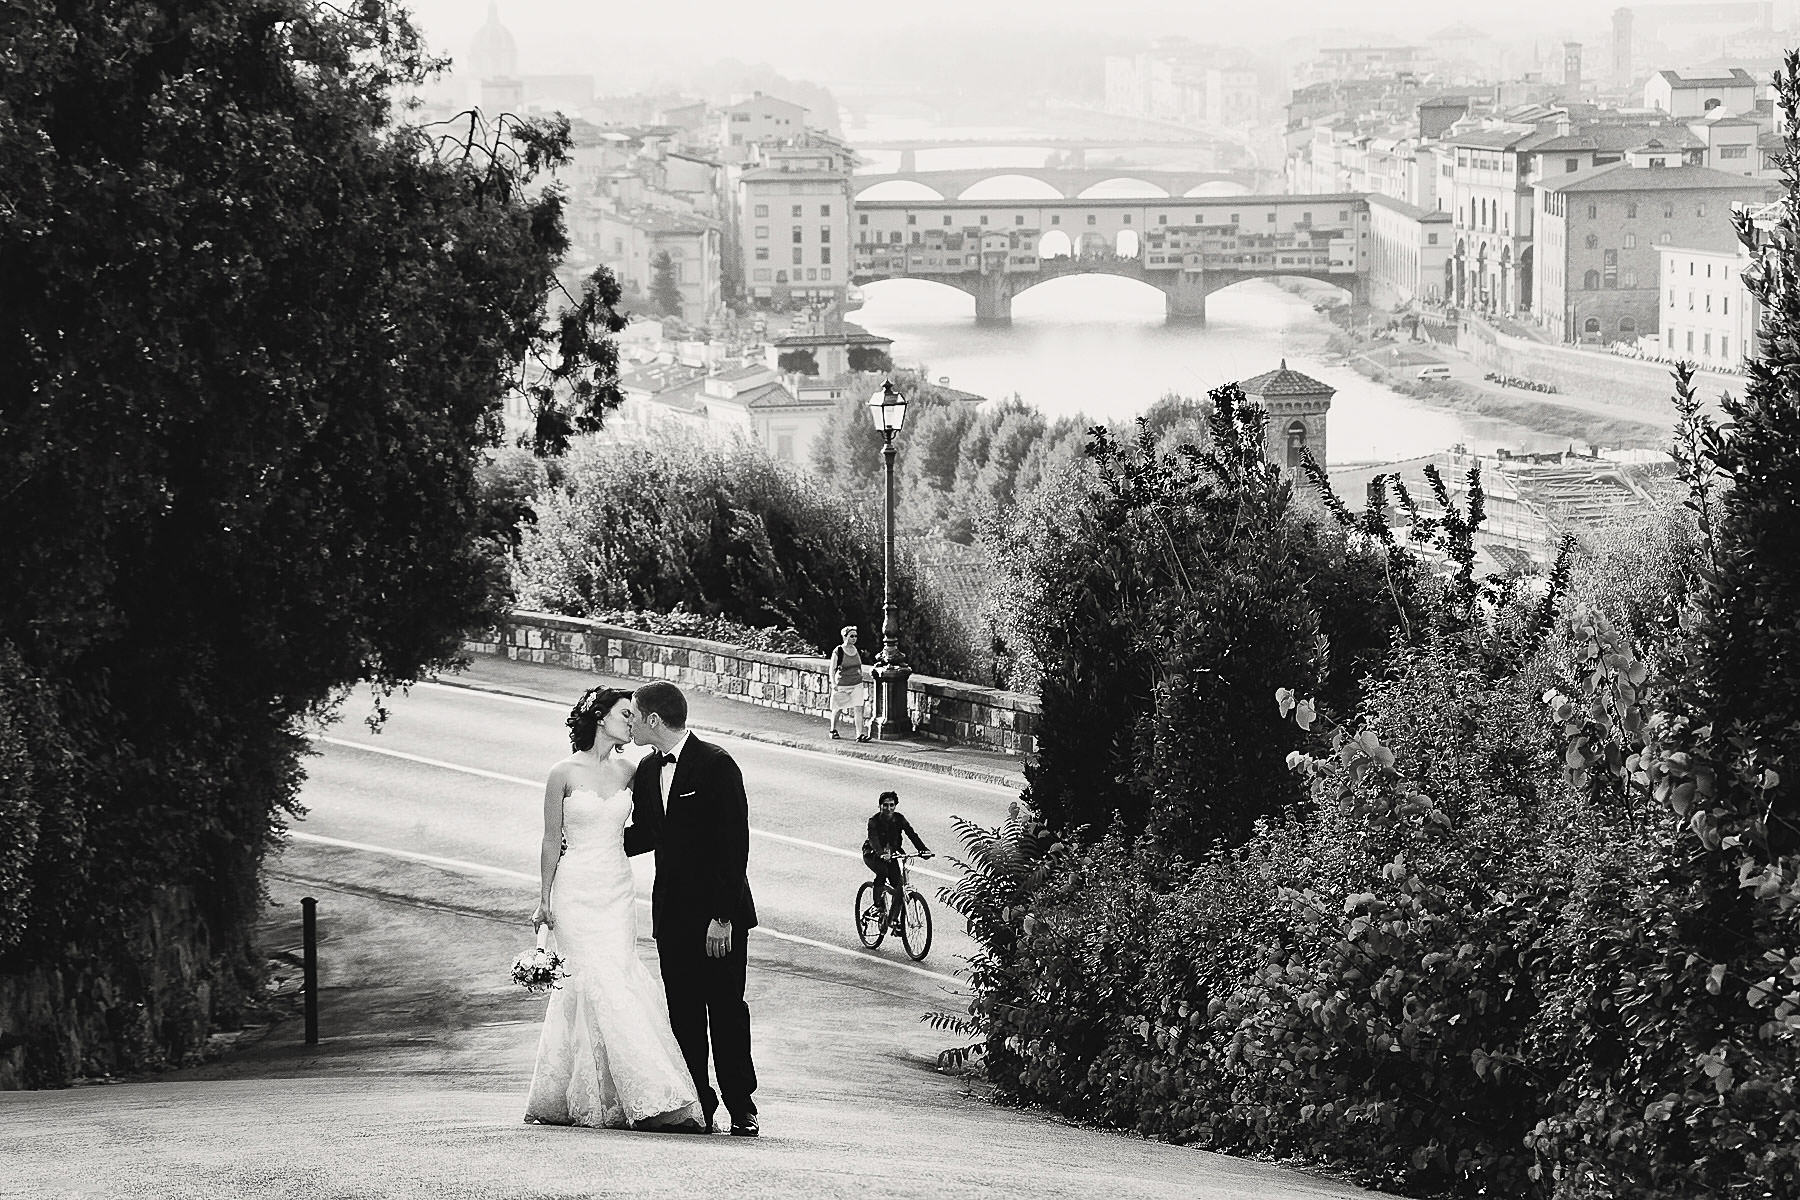 Elegant and fashion bride and groom wedding photo in Florence at Piazzale Michelangelo